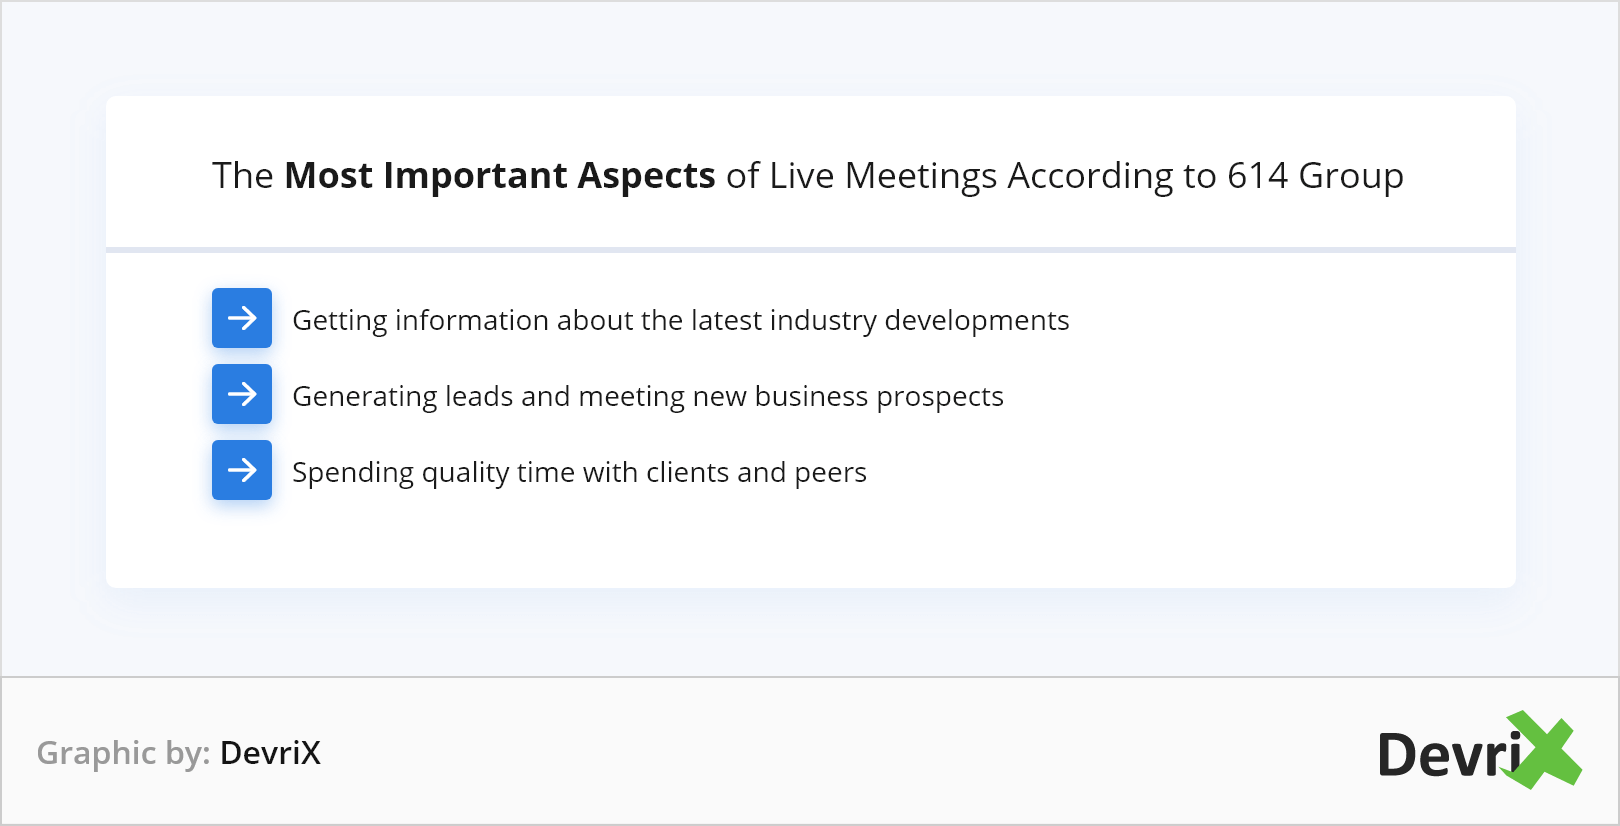 The Most Important Aspects of Live Meeting